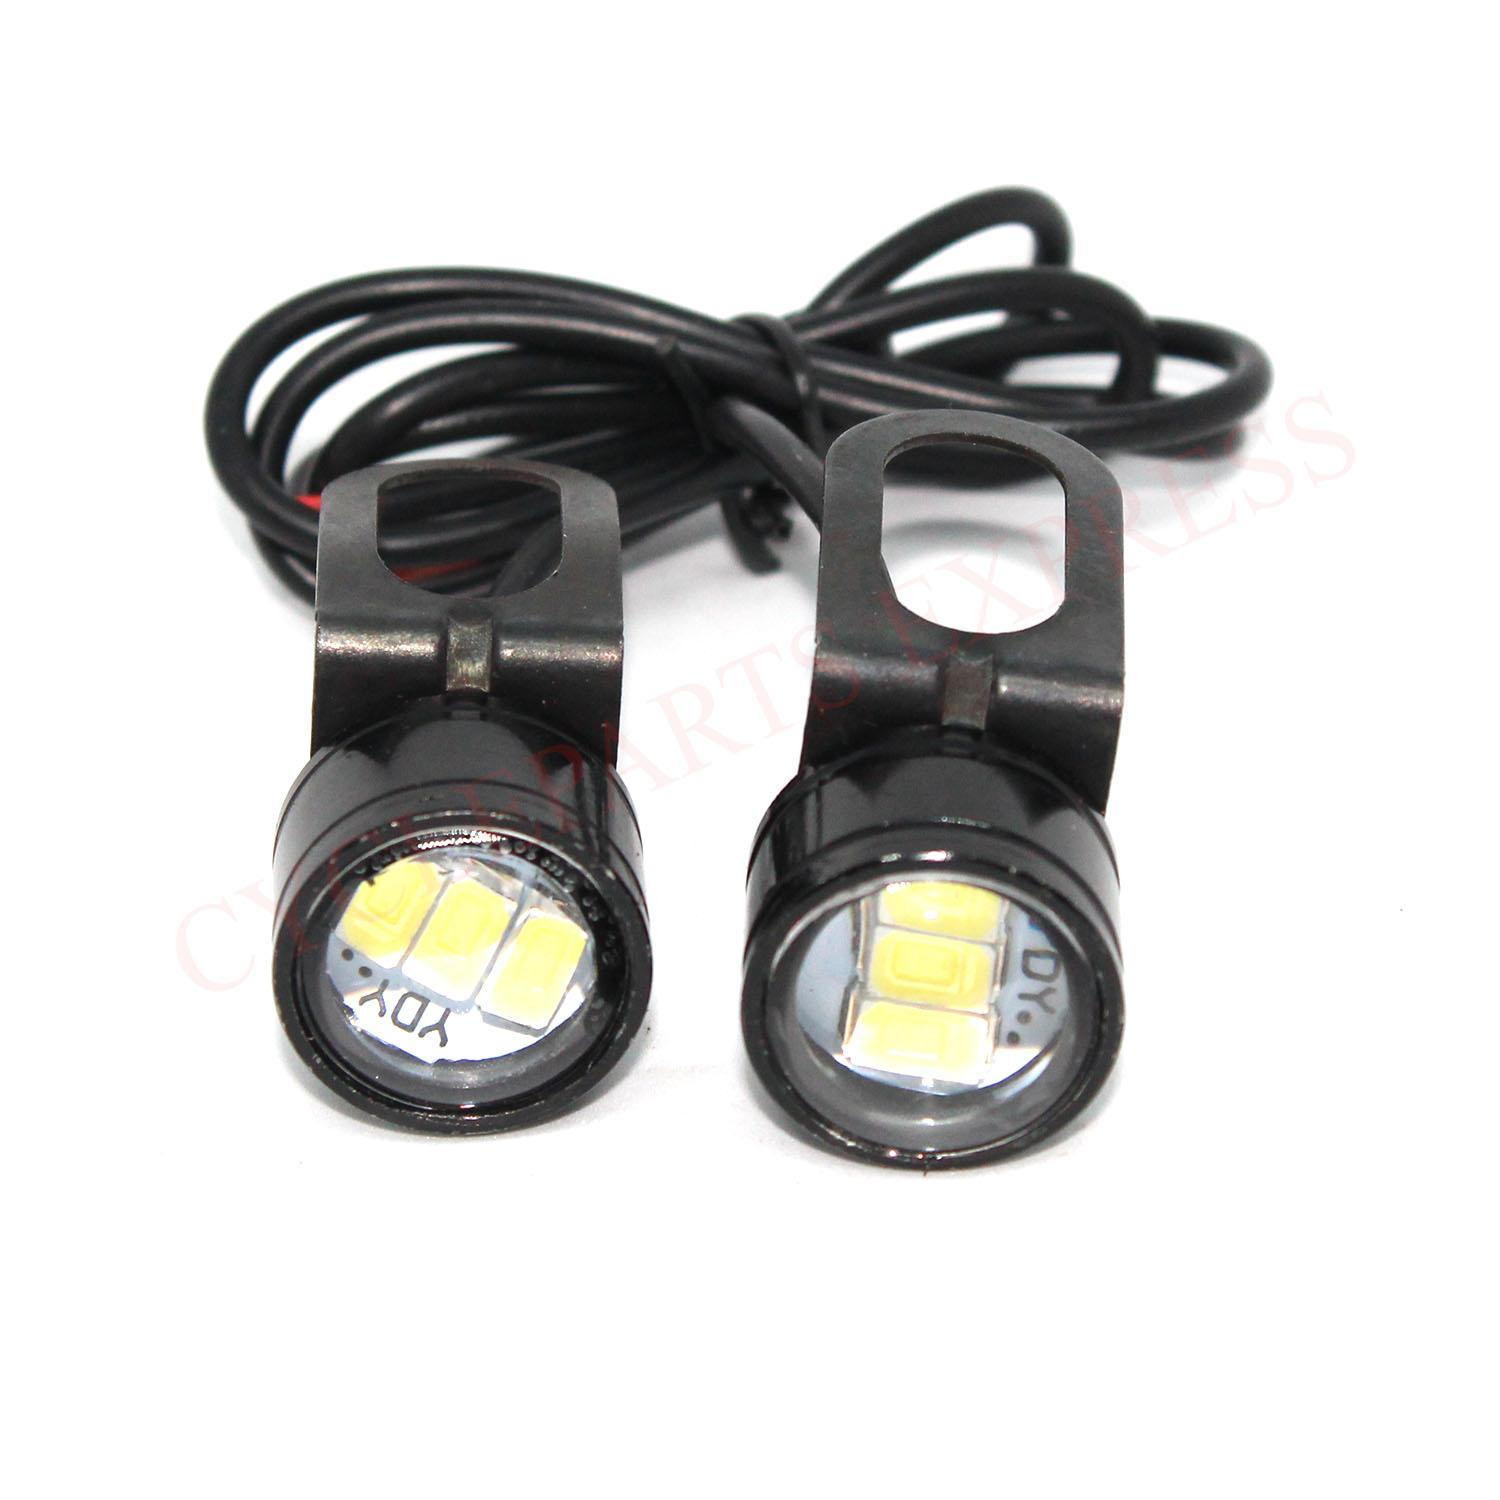 Car Horn For Sale Lights Online Brands Prices Reviews In Buy Wholesale Motorcycle Wiring Harness From China Msm 2778 Eagle Eye With Bracket Black Color White Light